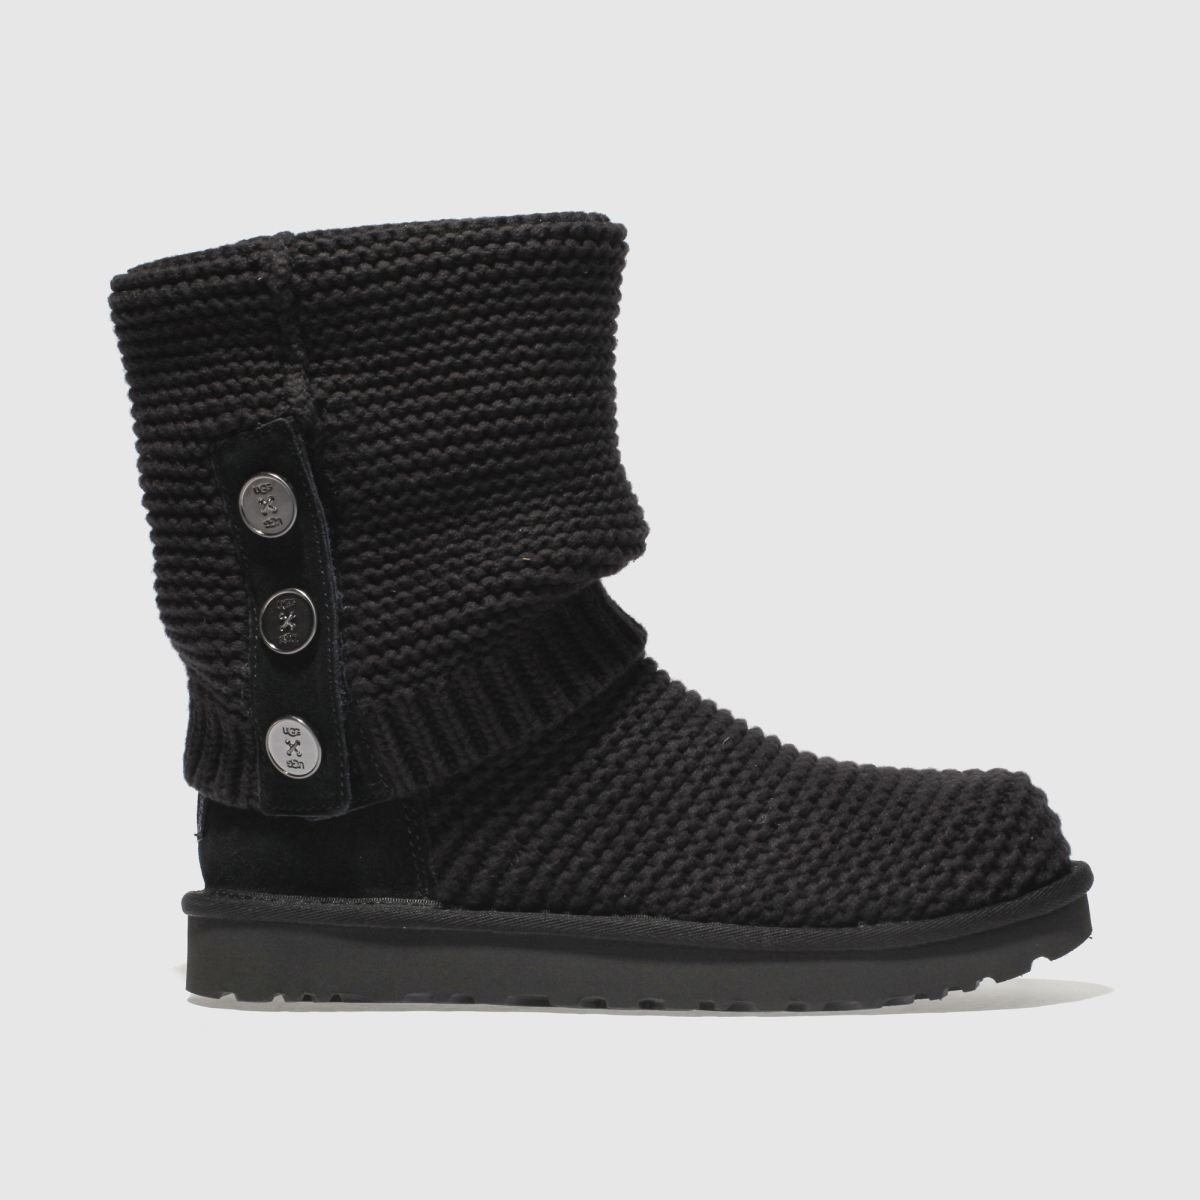 Ugg Black Purl Cardy Knit Boots